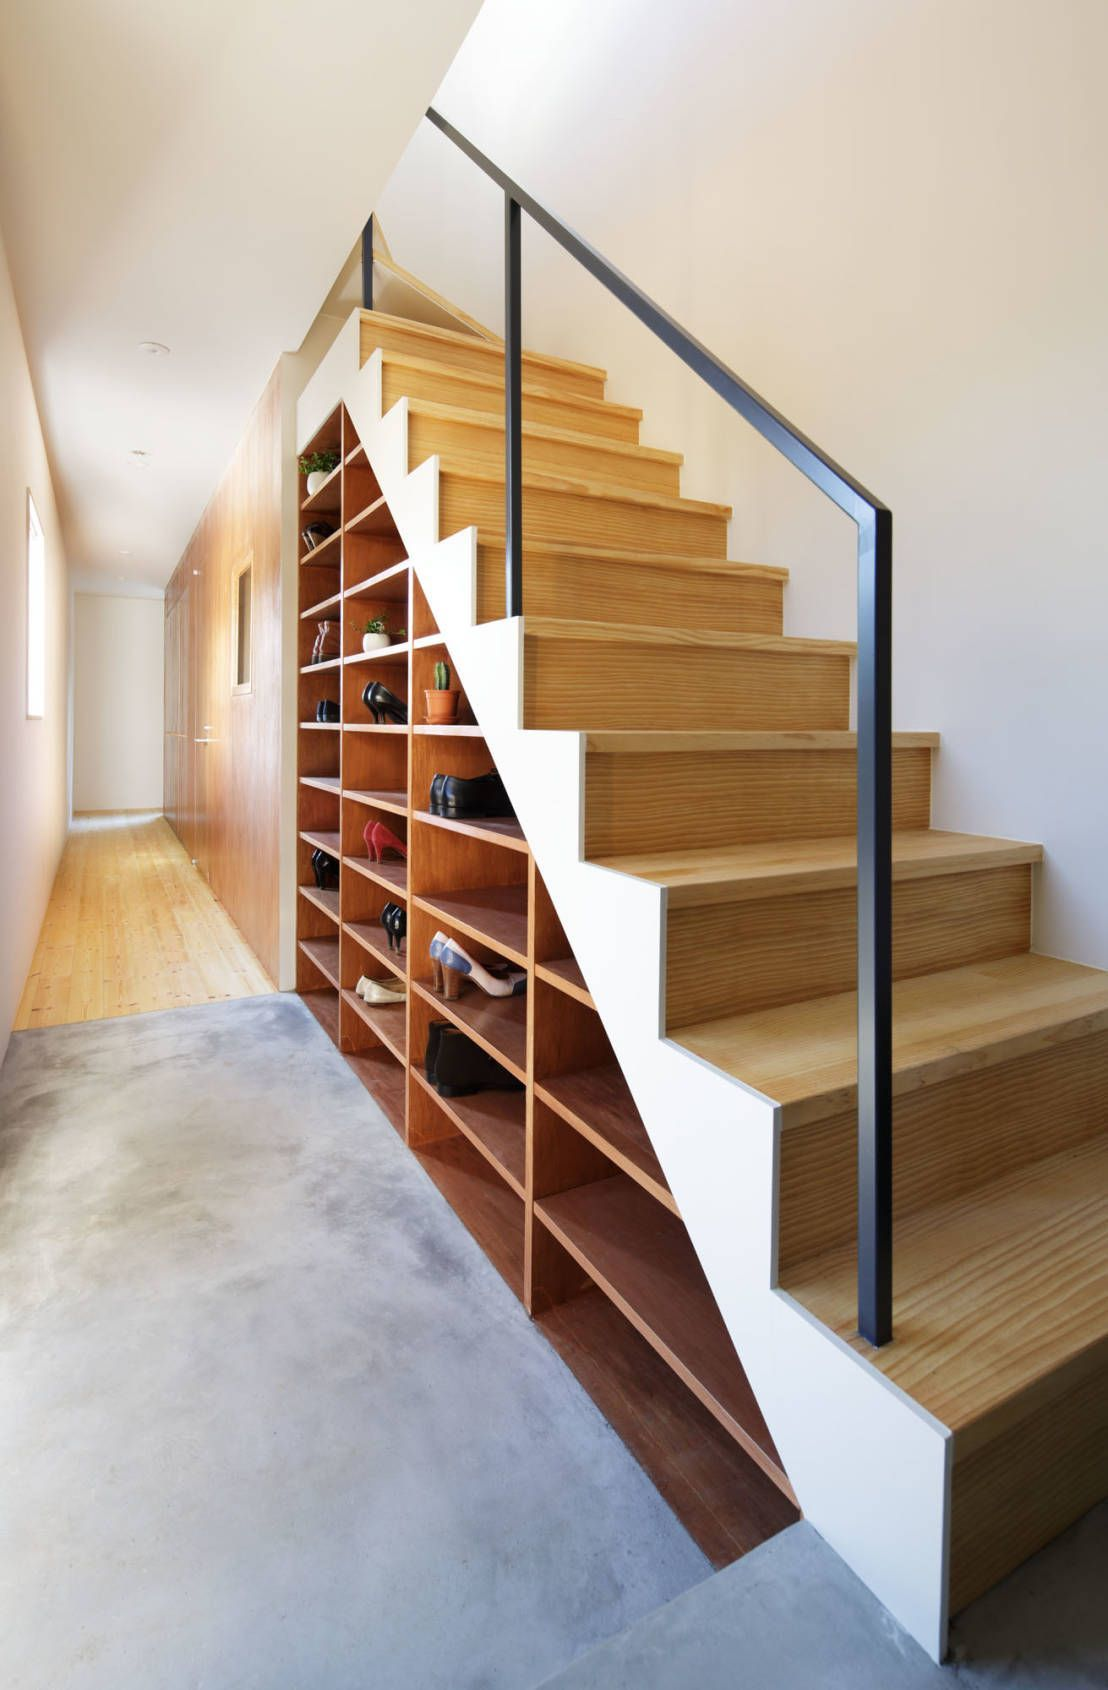 Staircase Ideas Design And Layout Ideas To Inspire Your Own